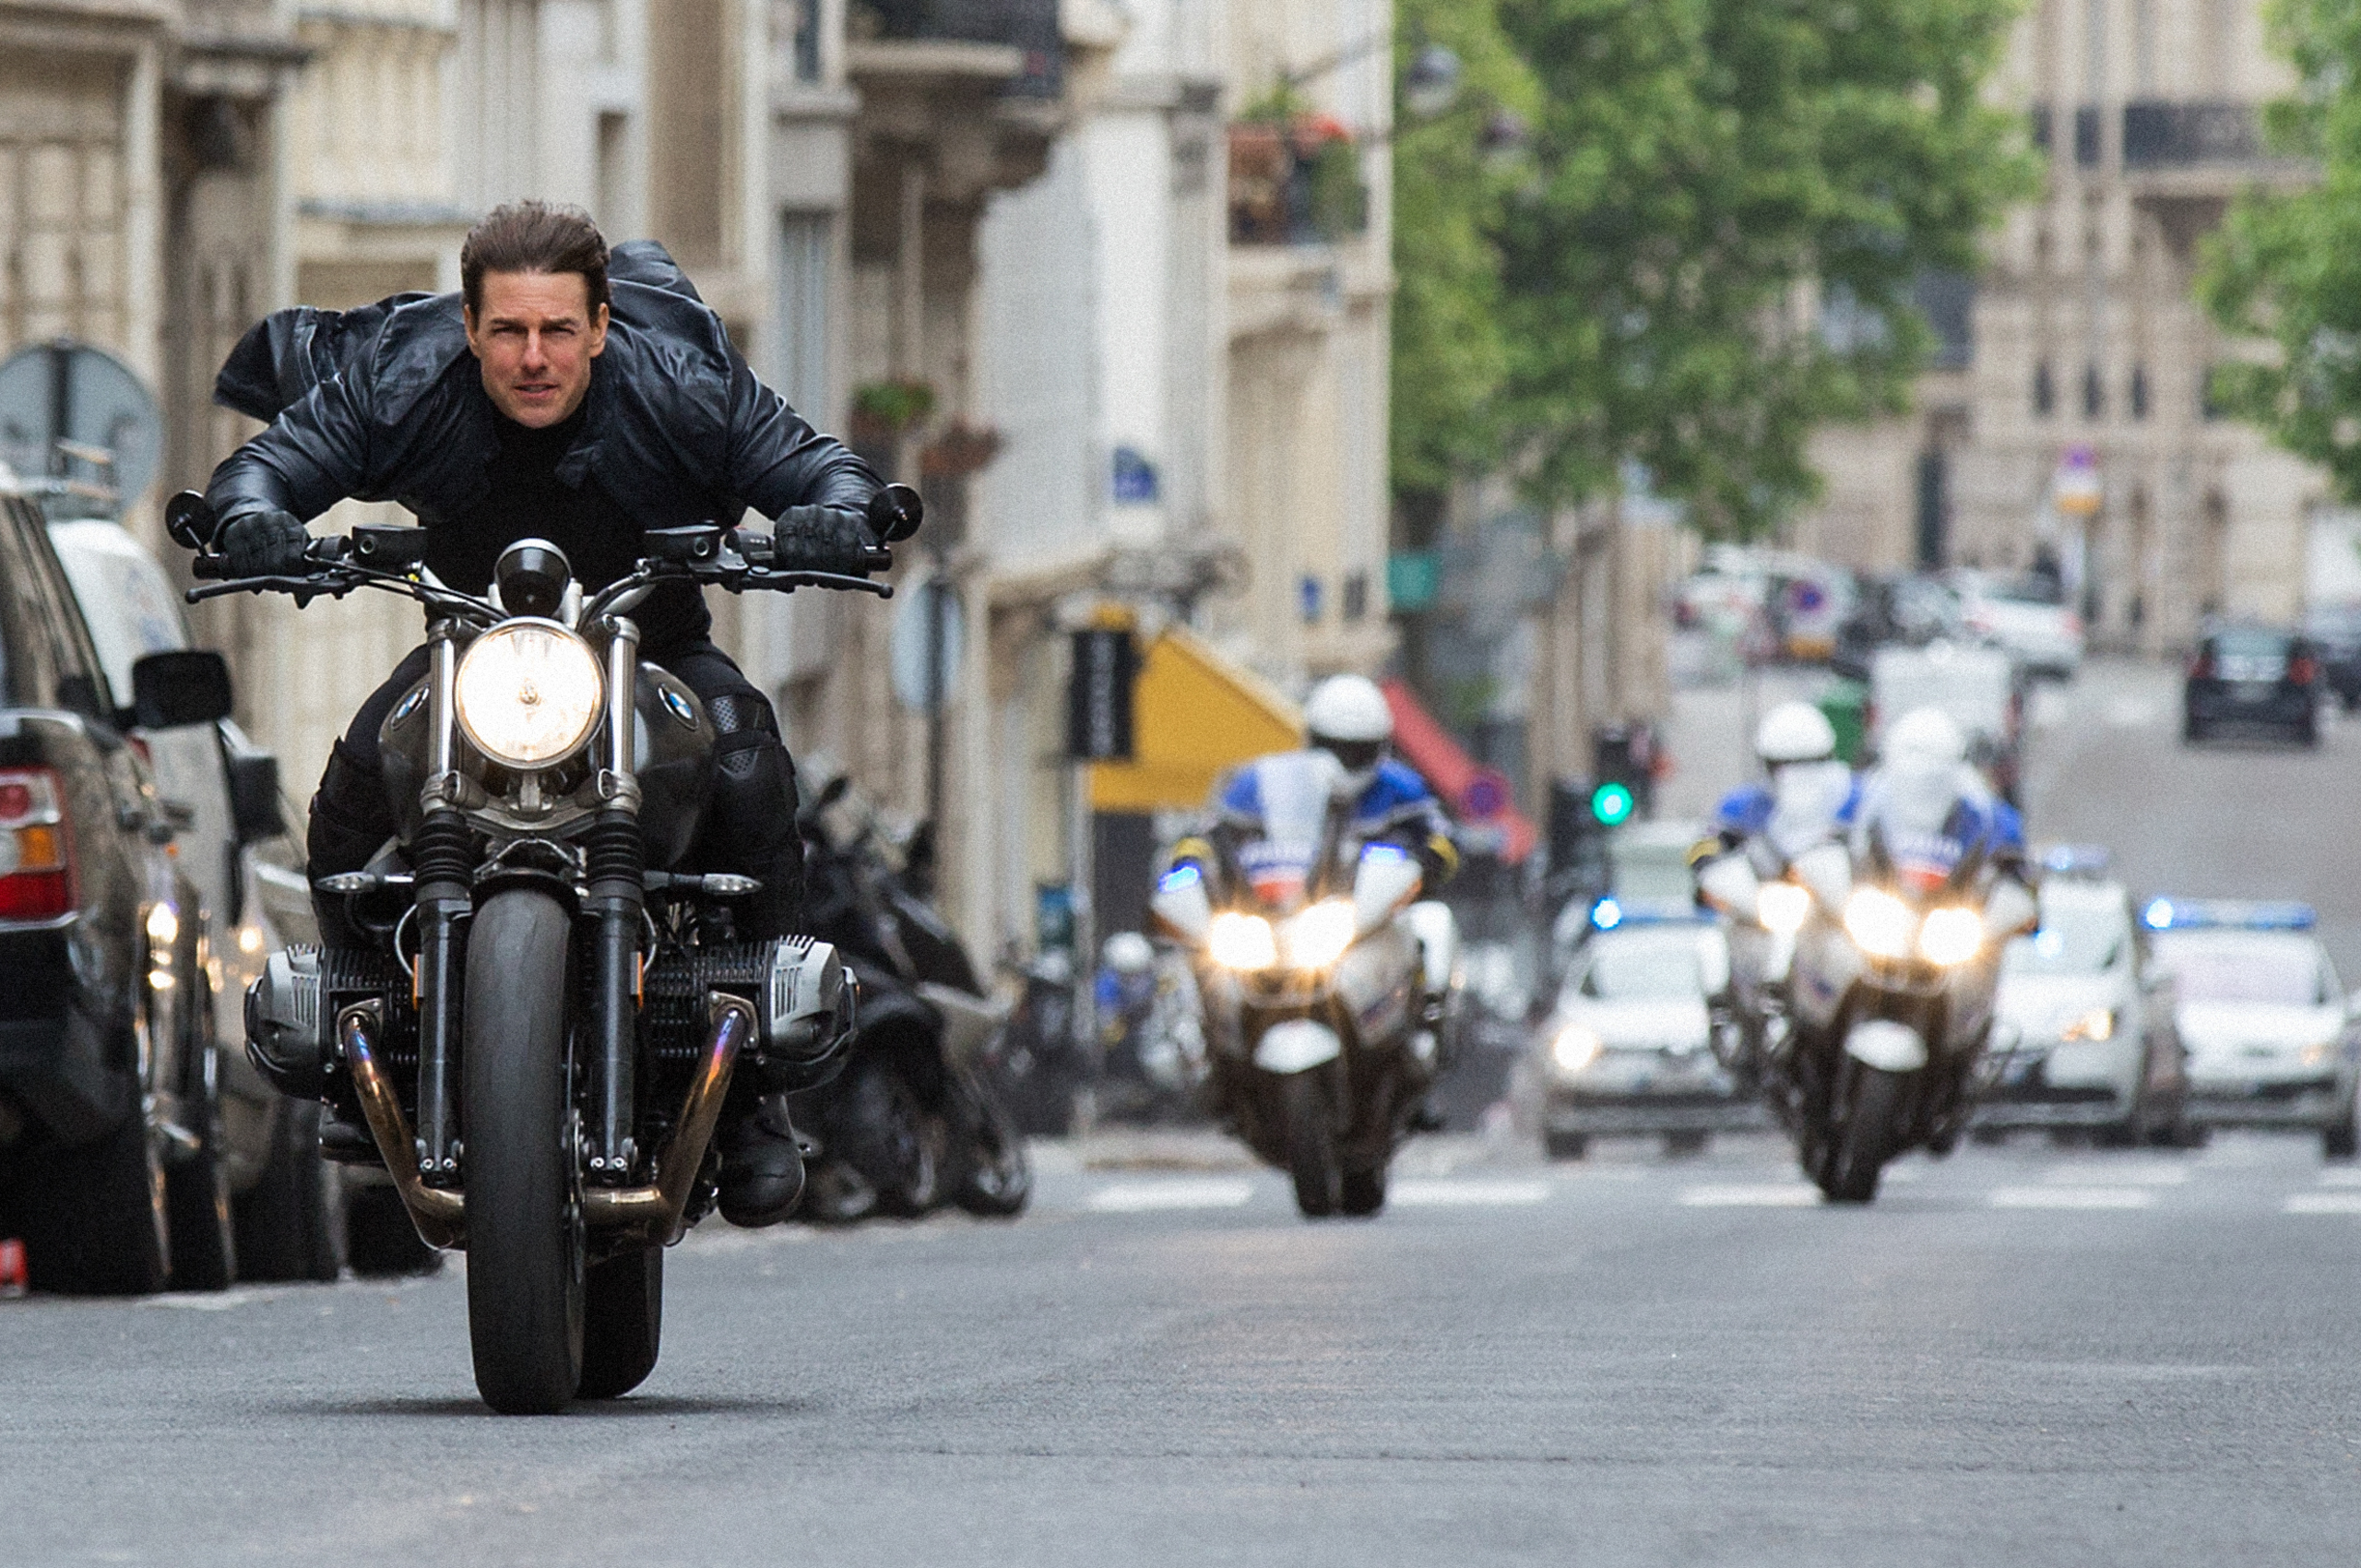 tom-cruise-as-ethan-hunt-in-mission-impossible-fallout-2018-l2.jpg